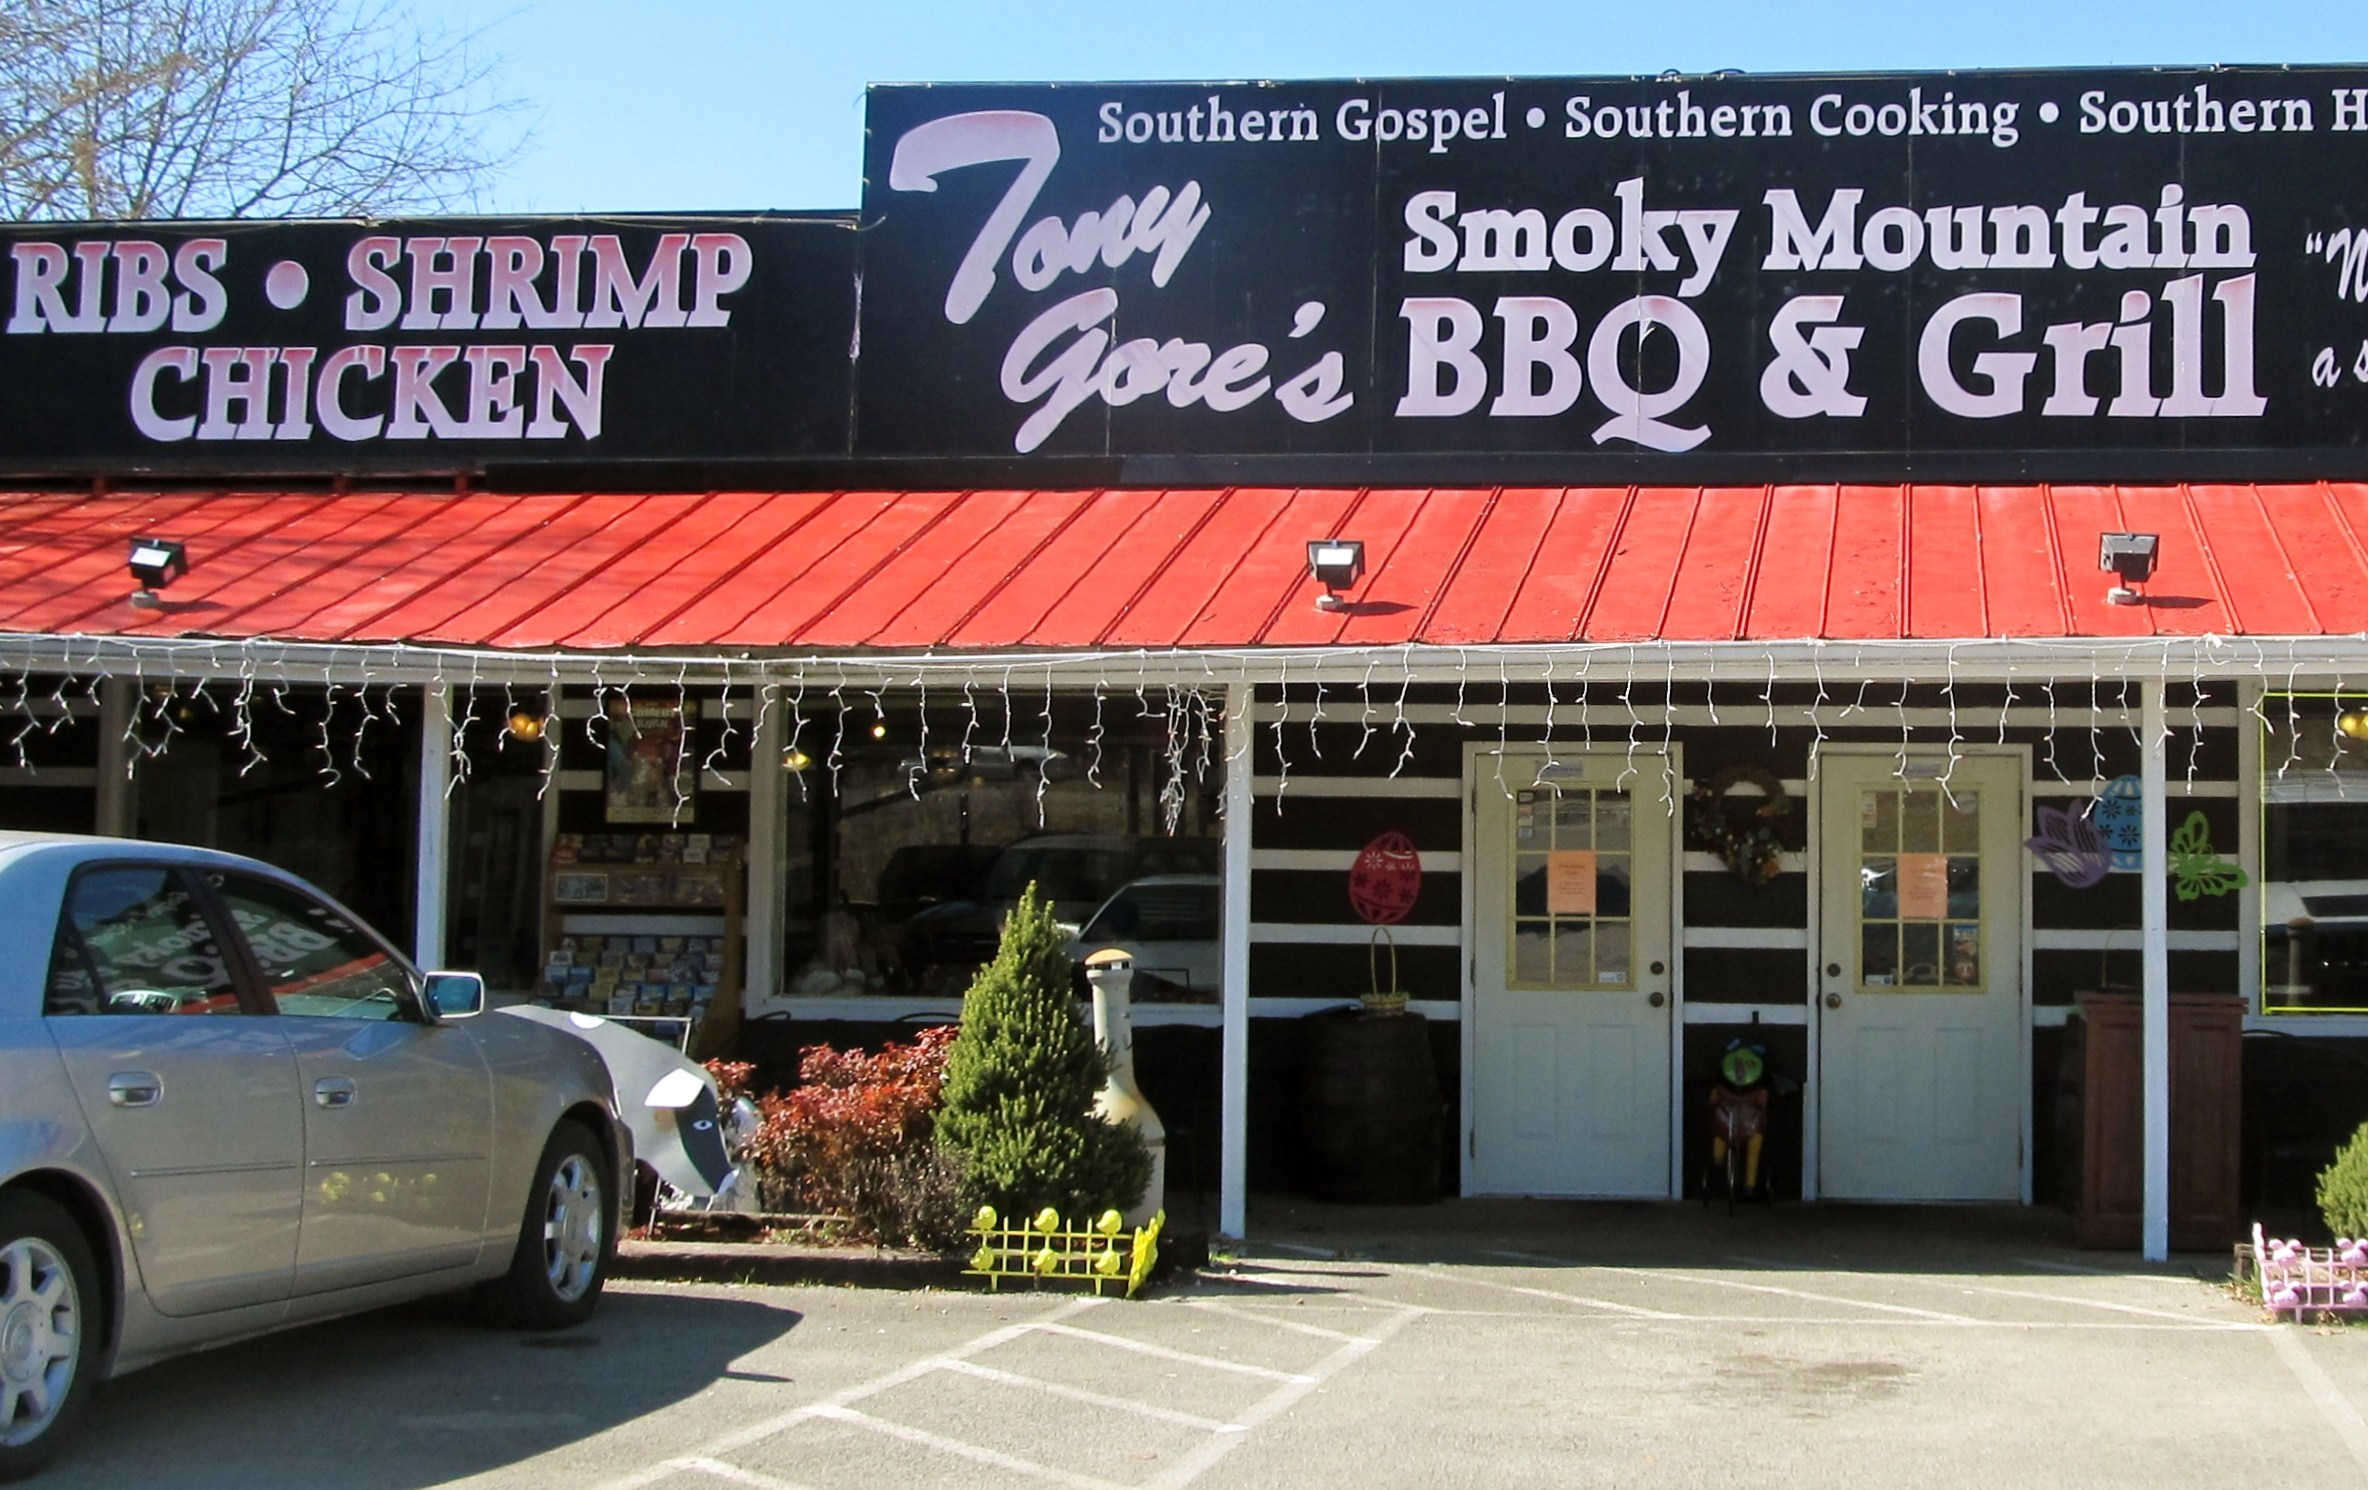 You'll love food inside Sevierville Restaurants Tony Gore's BBQ any time of the year, plus live gospel music!